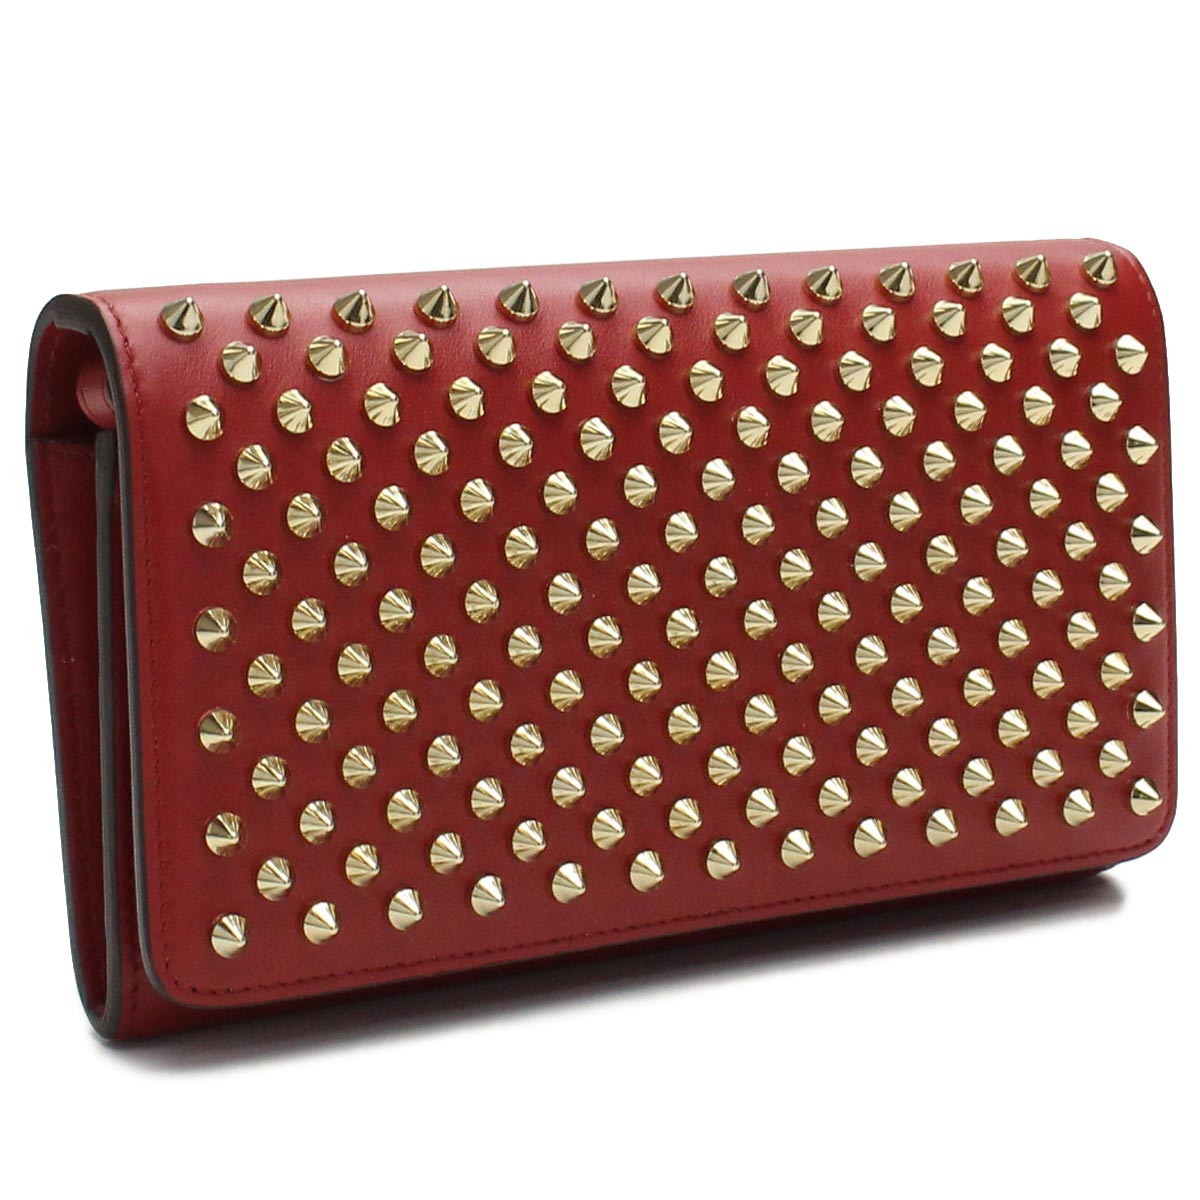 7fb49612f4f 1165076 R108 CARMIN/GOLD red system spikes studs macaroon with the  クリスチャンルブタン Christian Louboutin wallet folio long wallet small ...